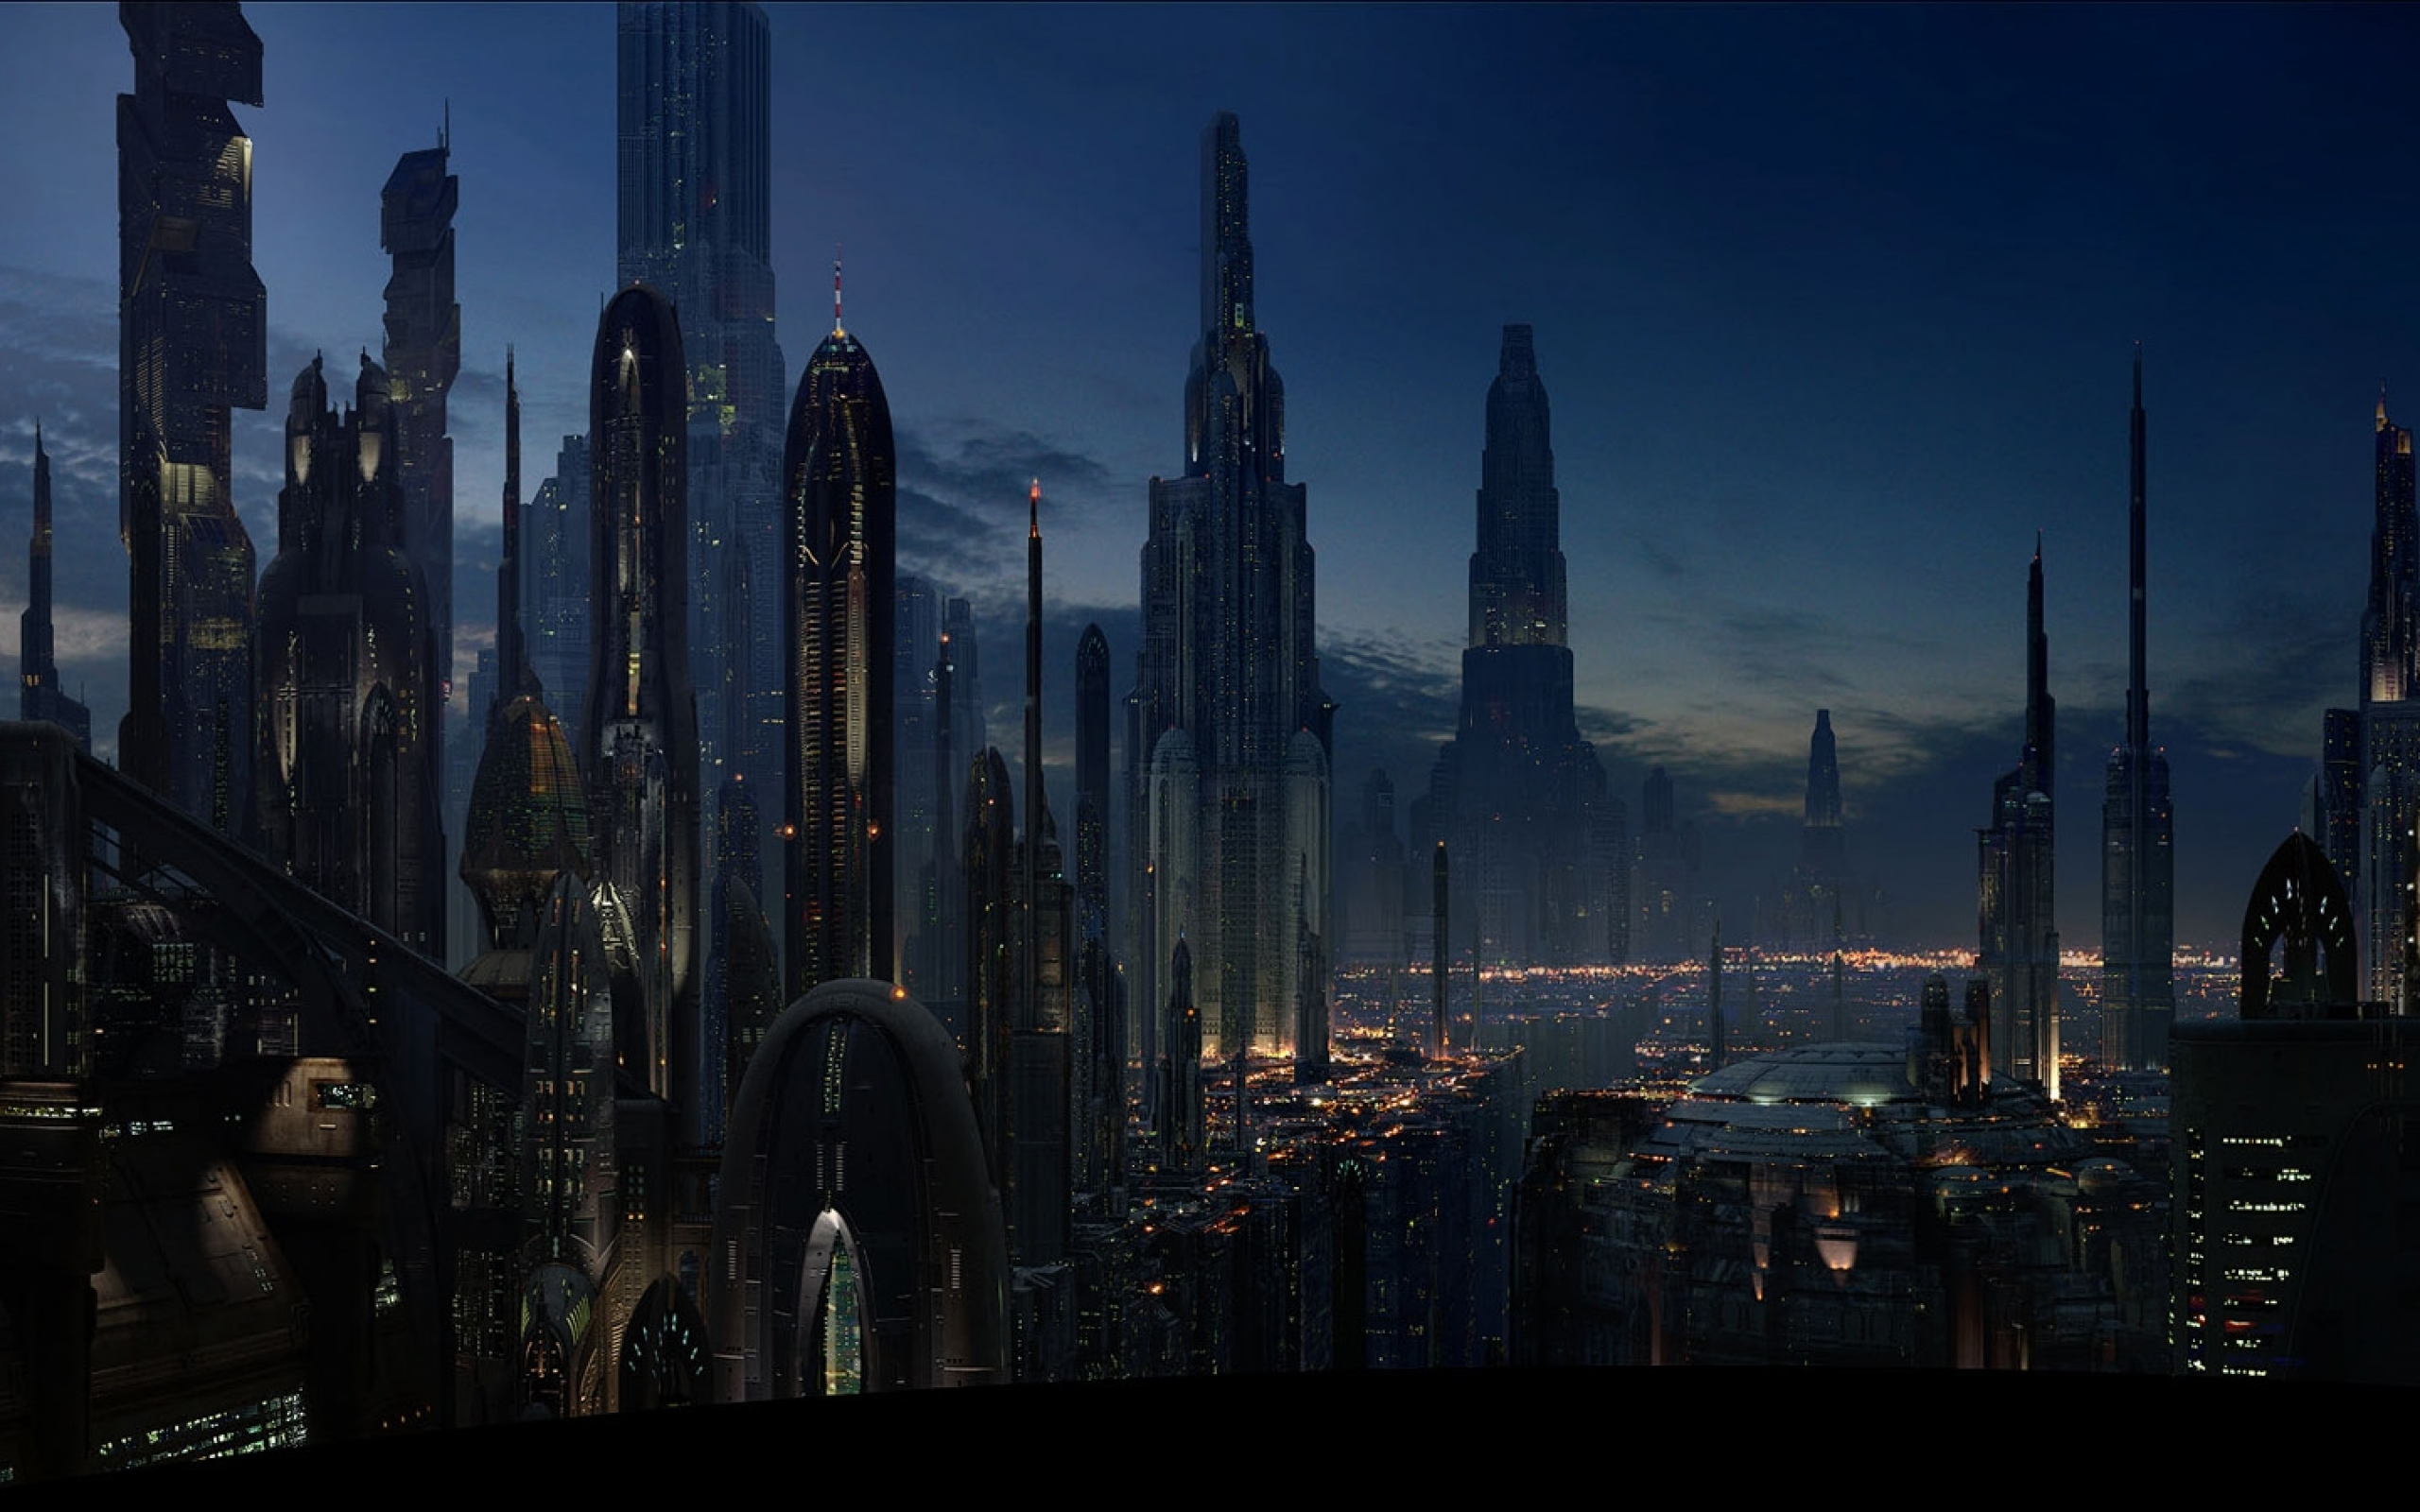 Landscape Hd Coruscant 2560 1600 Star Wars Wallpaper